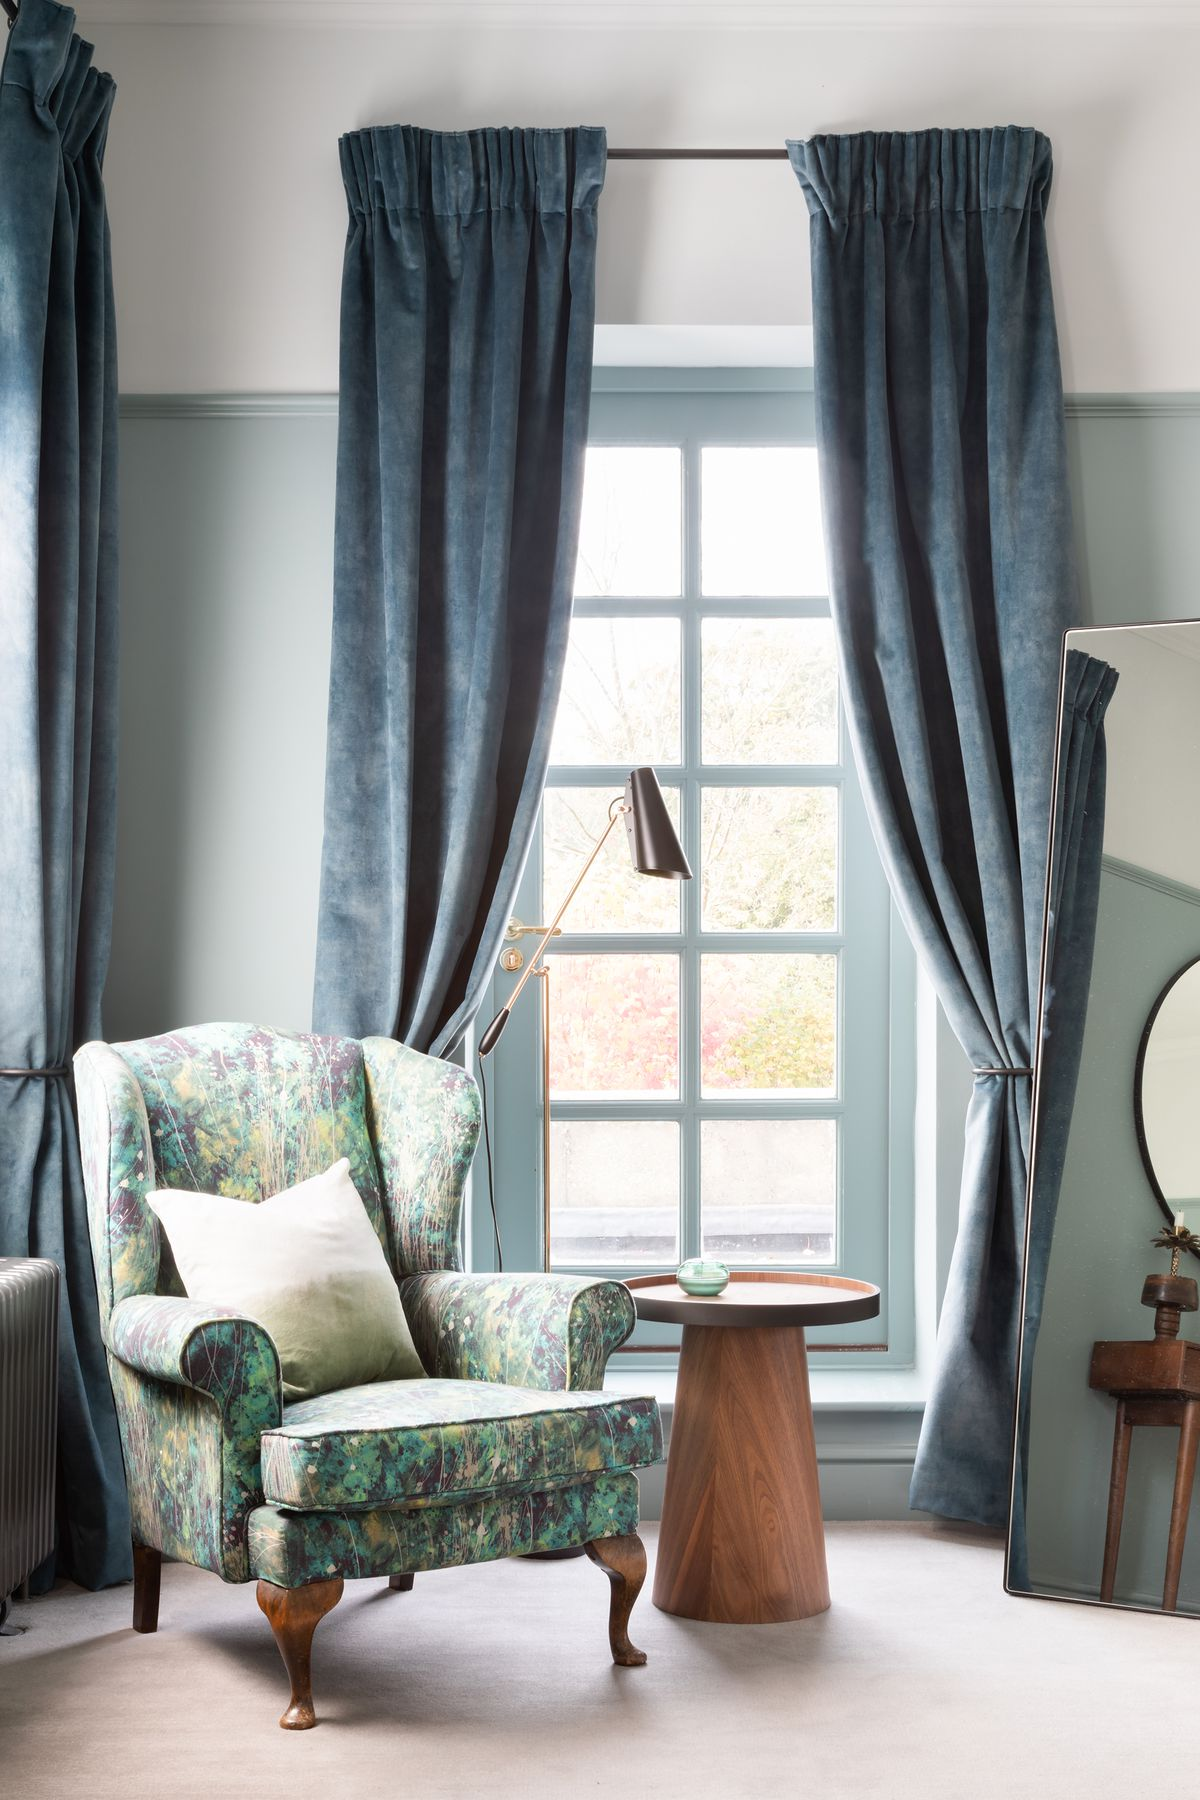 Blue gradient curtains flank a tall window. A patterned armchair and wooden side table sit nearby.